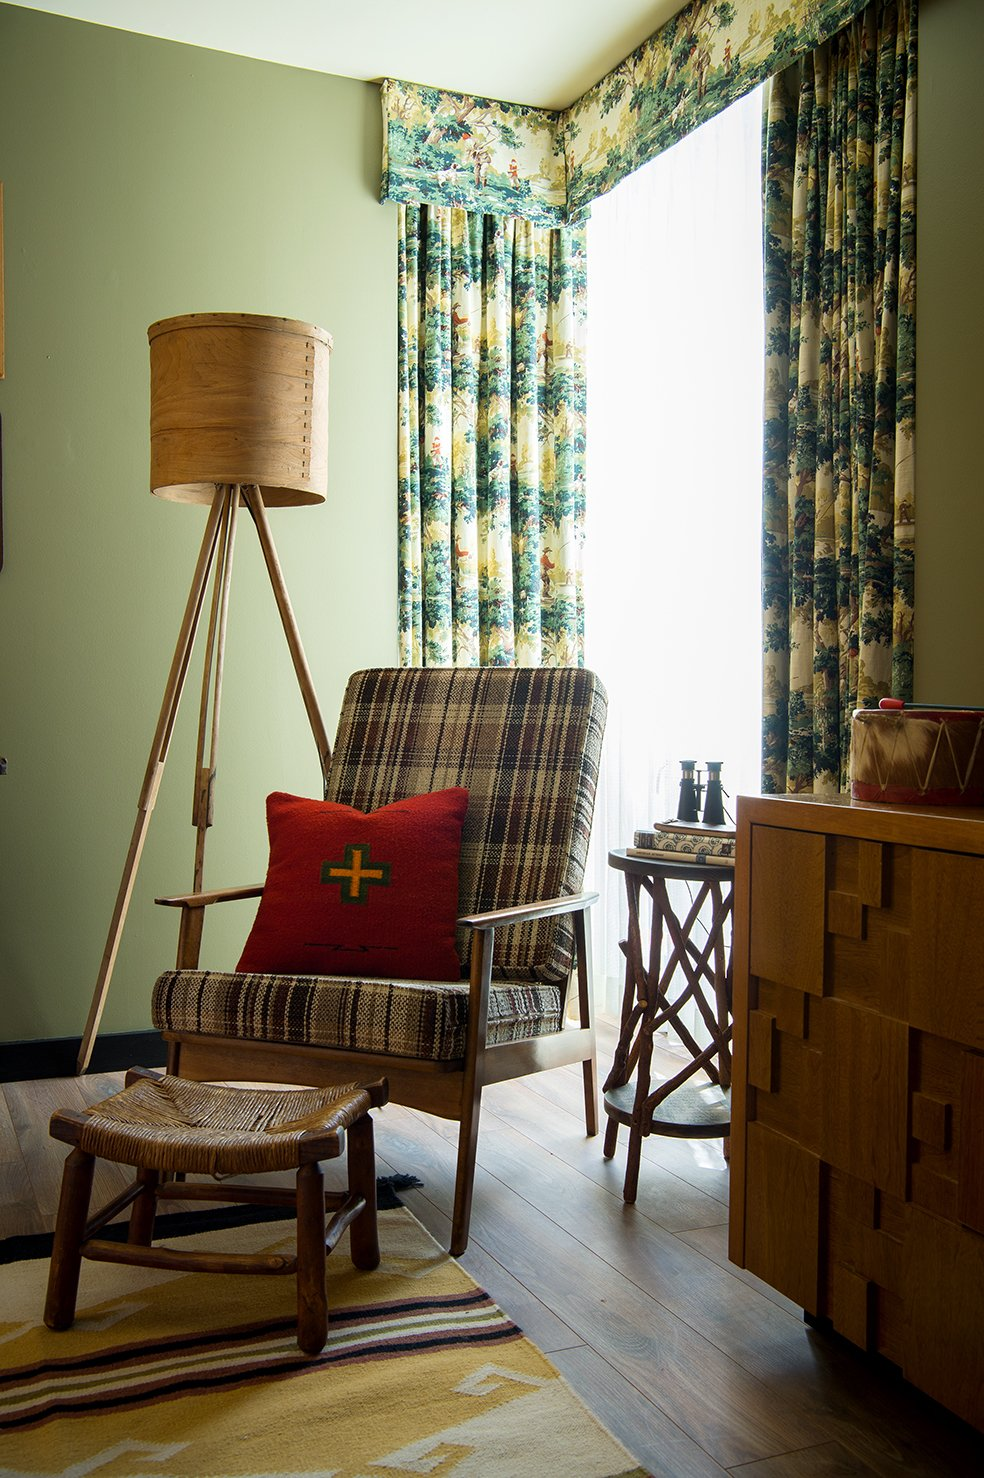 Bedroom, Lamps, Chair, Medium Hardwood Floor, Storage, and Rug Floor Hunting print draperies complement accessories and toys from the Camp Wandawega Land of Nod collaboration.  Photo 9 of 10 in This Wisconsin Hotel Suite Conjures the Best of Summer Camp—Hold the Bug Spray